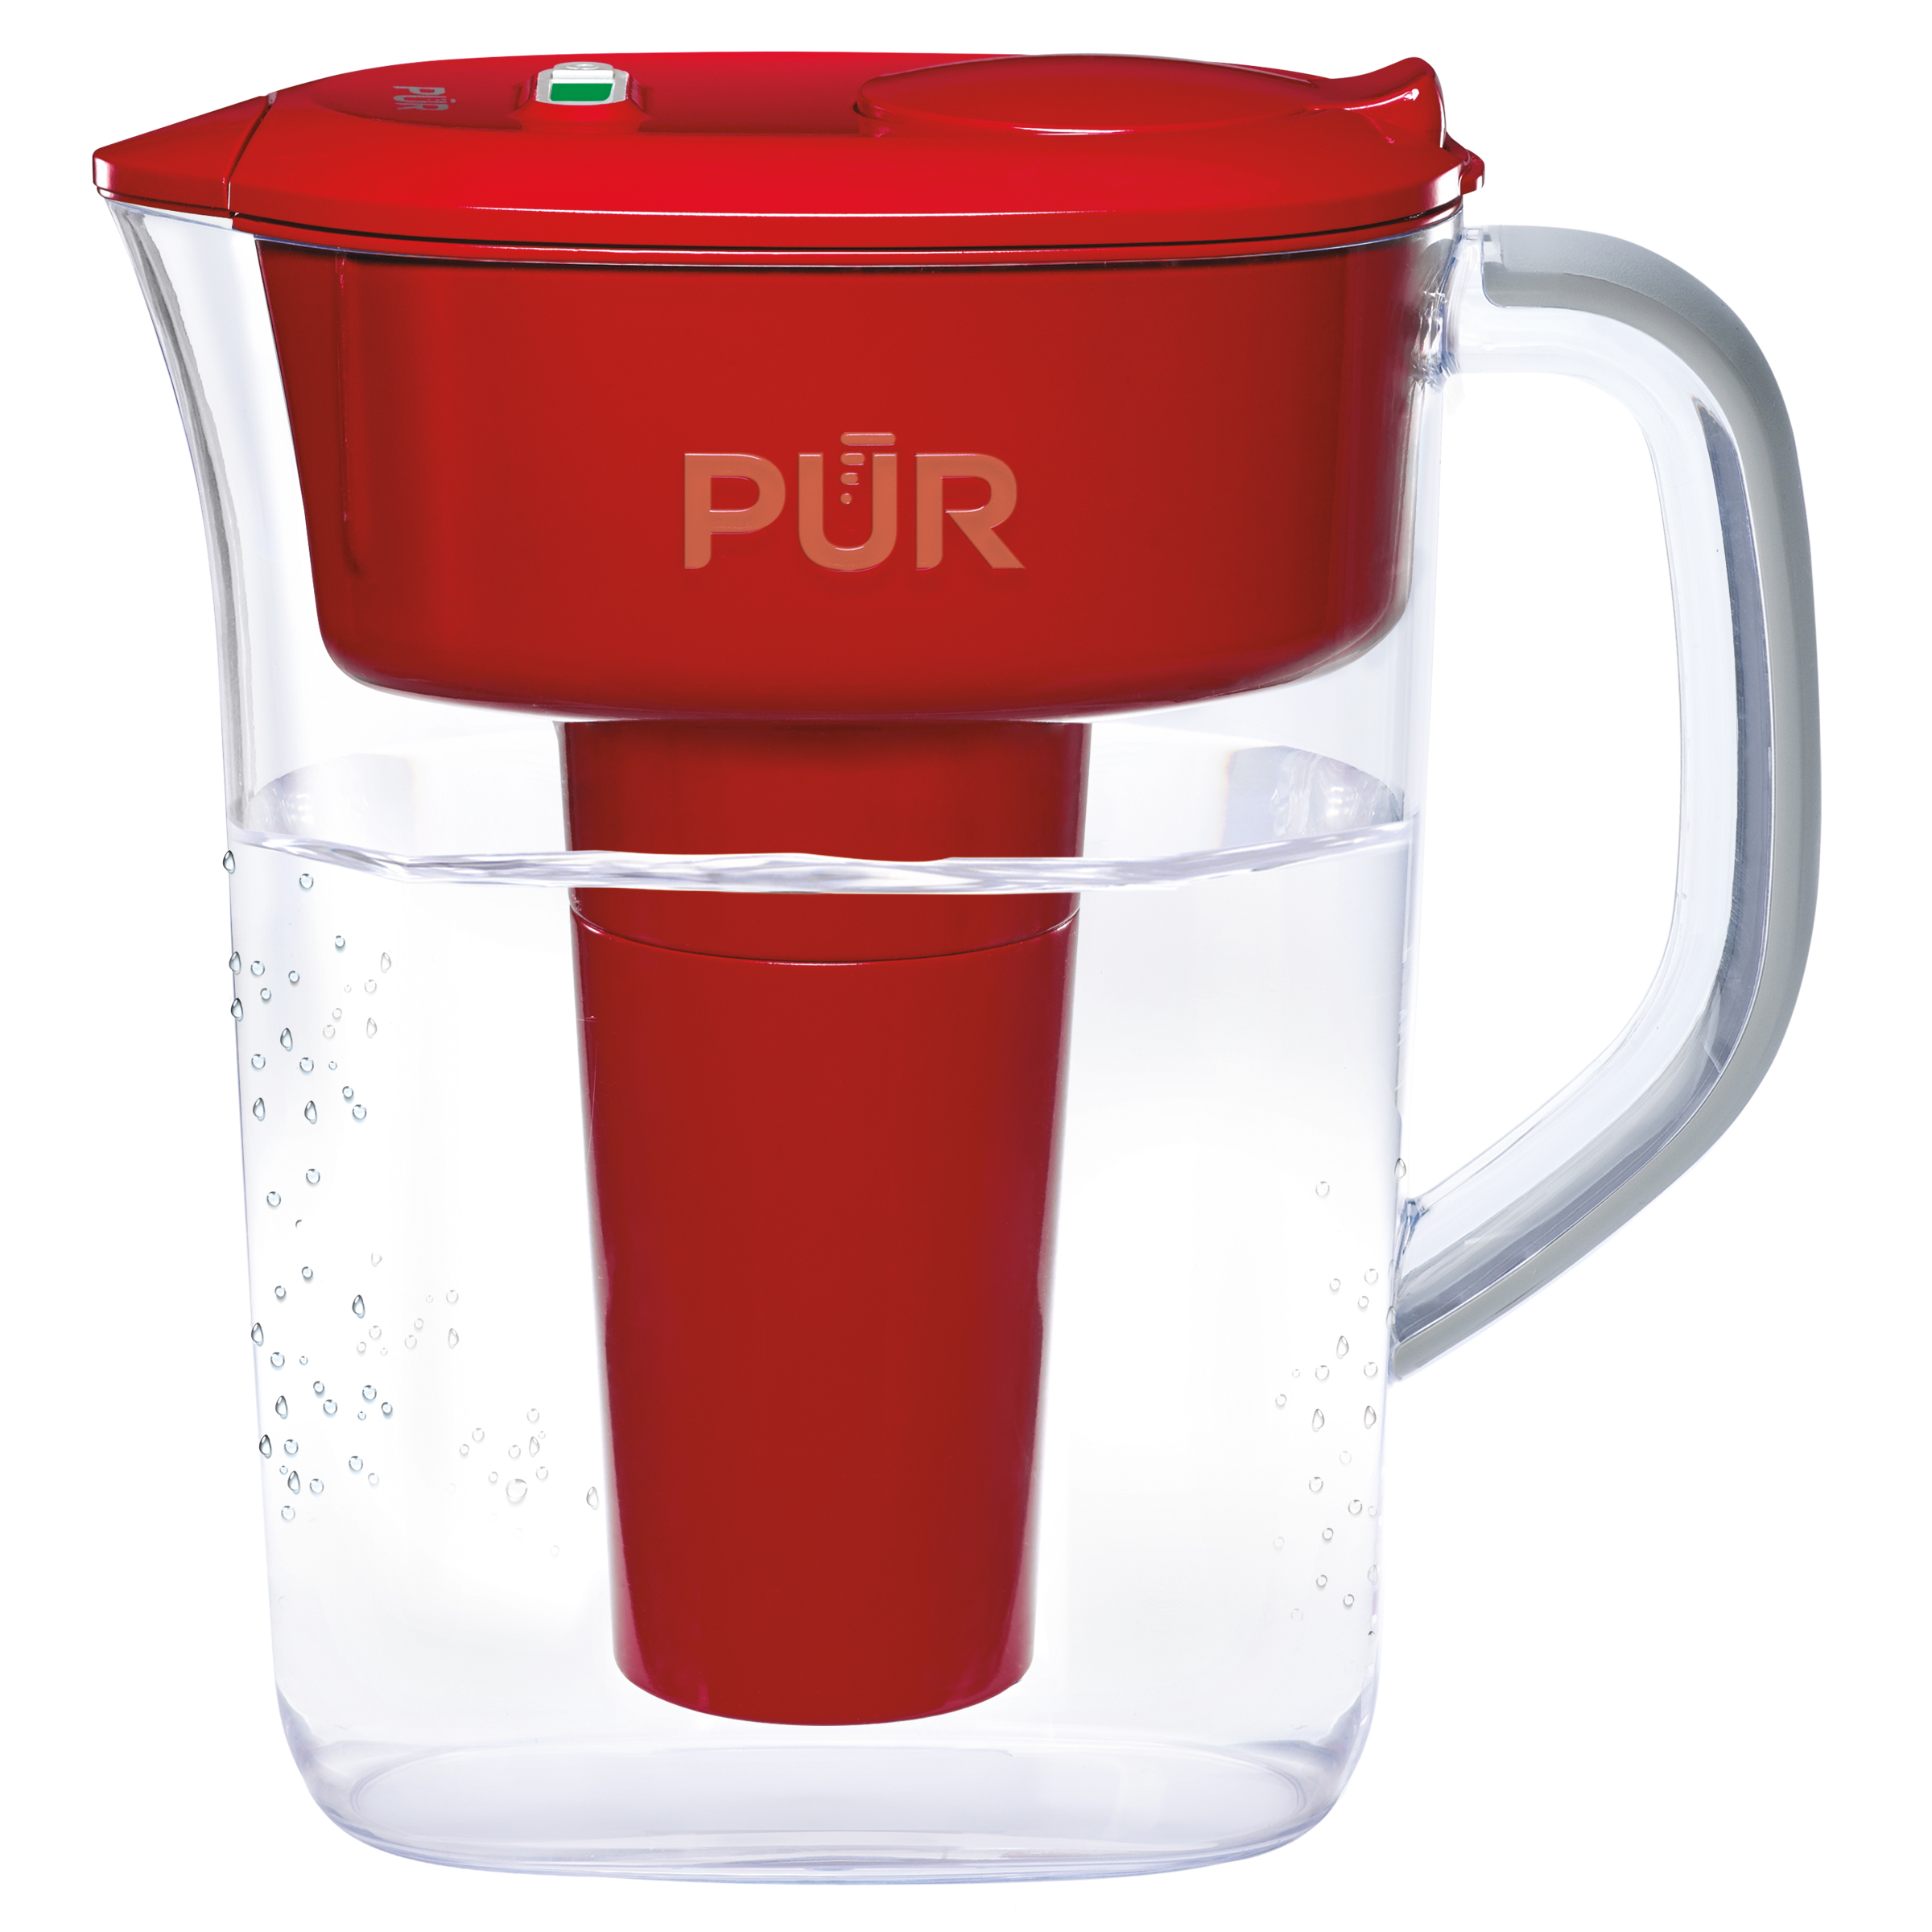 PUR Ultimate Pitcher Water Filter with Lead Reduction 7 Cup, PPT711R, Red